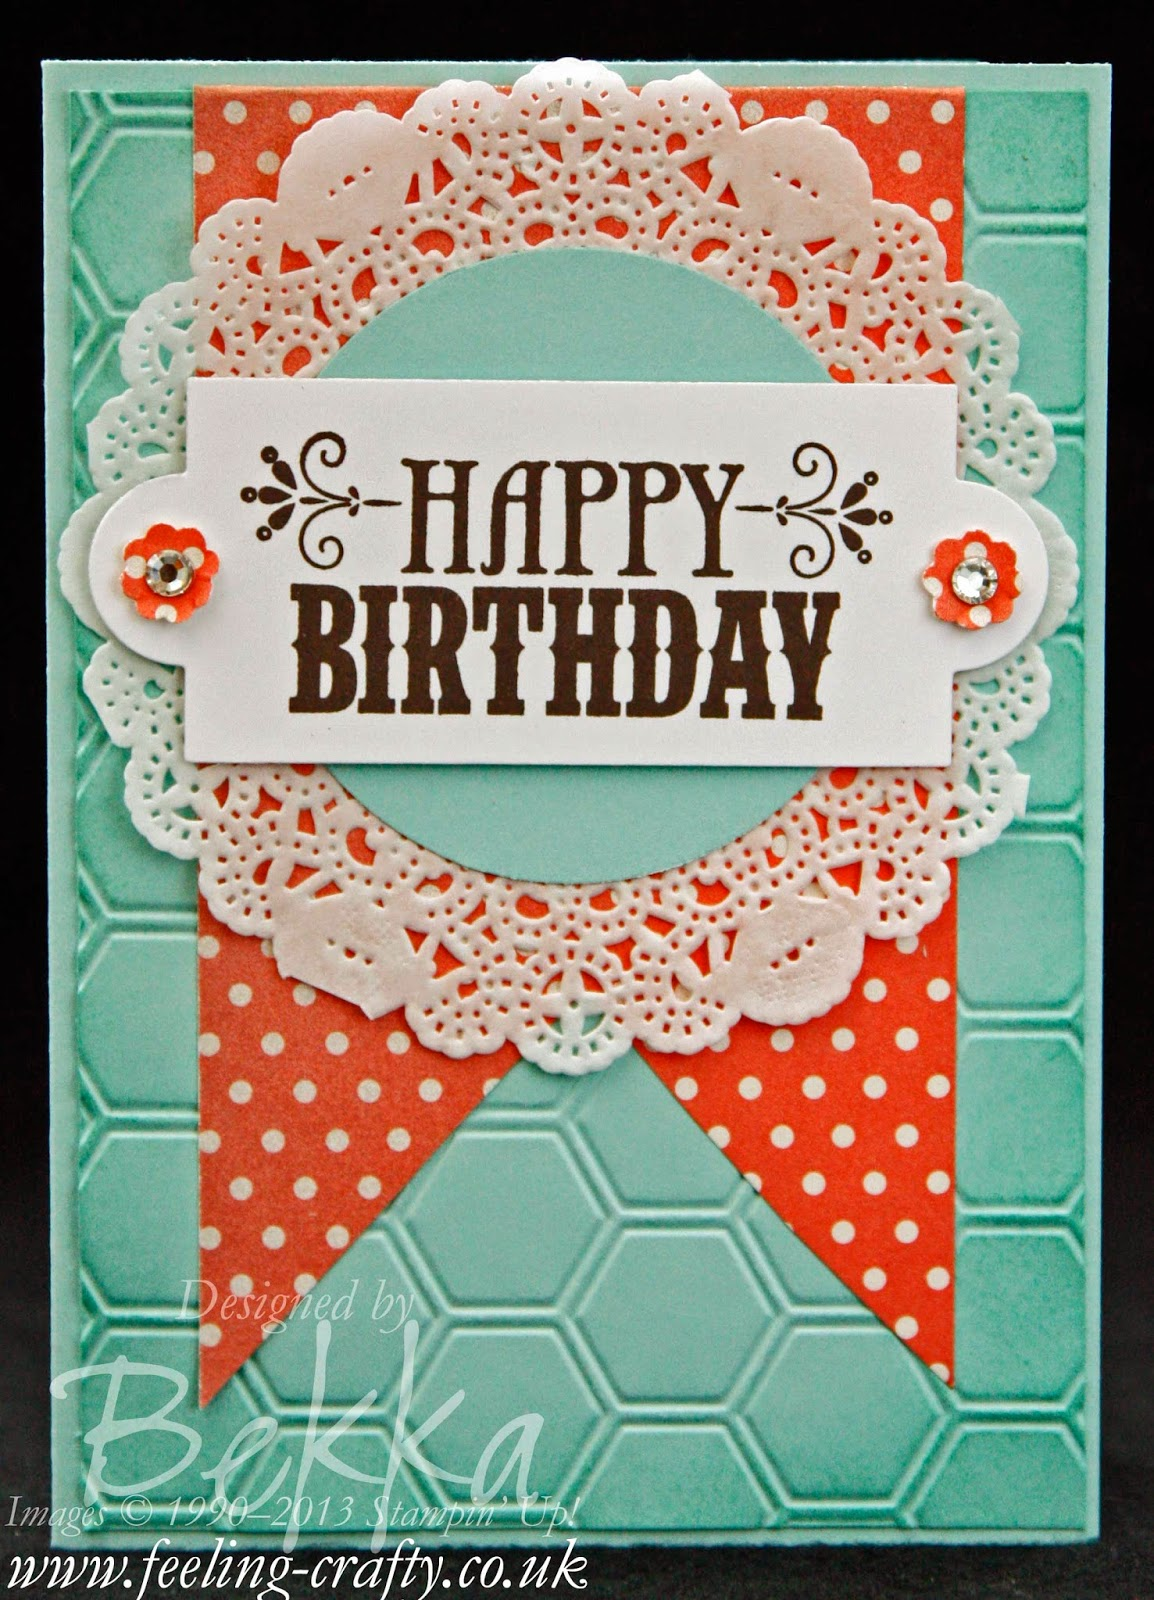 Your Amazing Birthday Card by Stampin' Up! UK Demonstrator Bekka - check out her blog here for lots of ideas